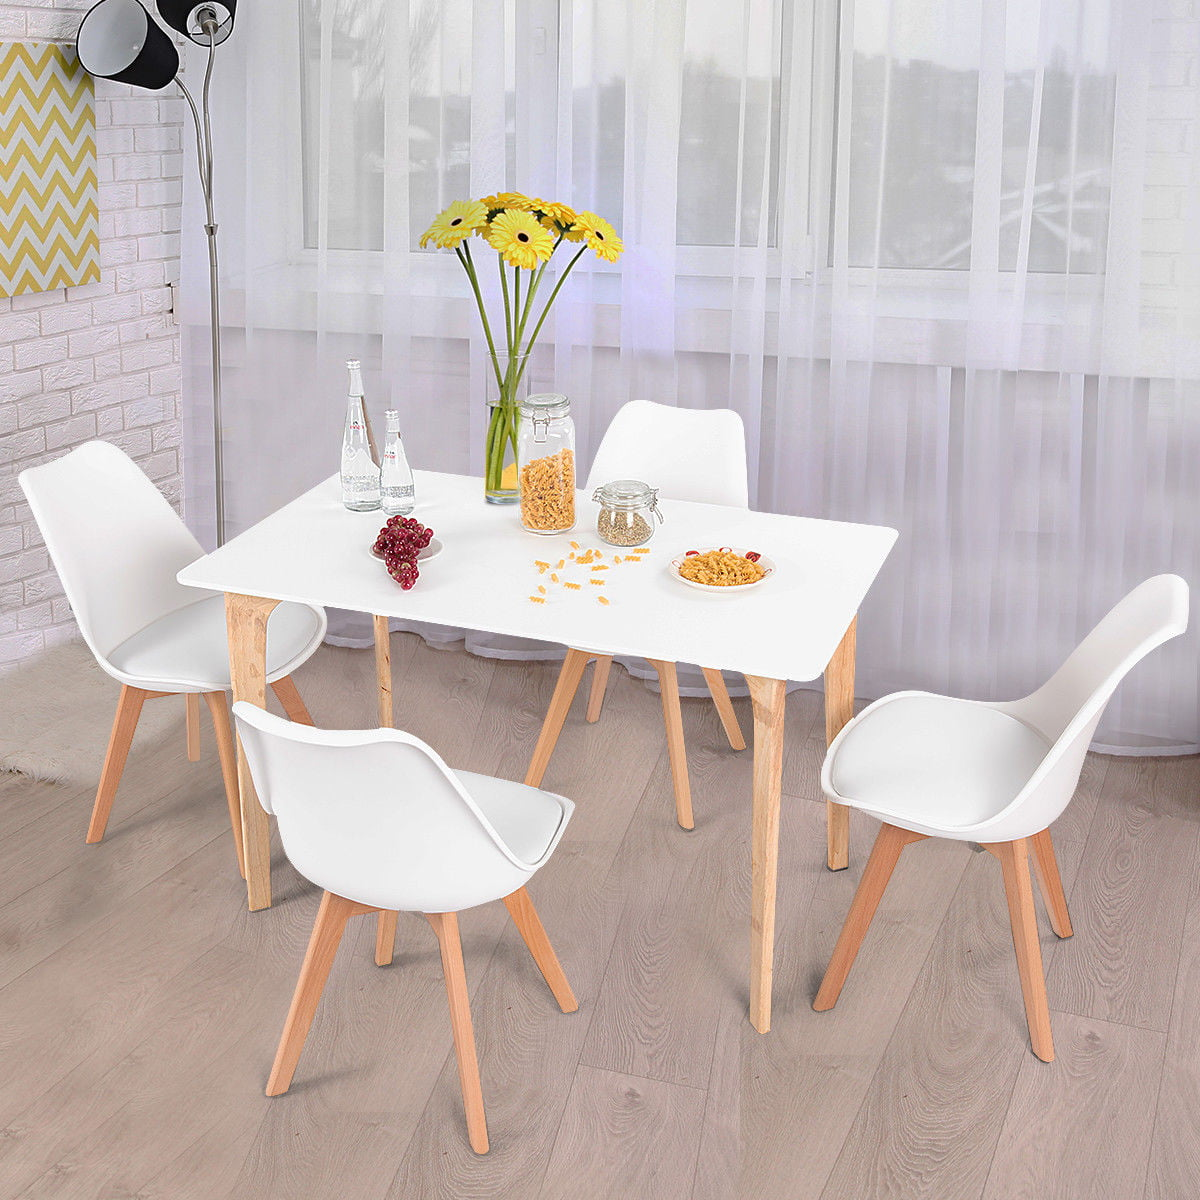 Costway 5 Piece Mid-Century Dining Set Rectangular Table and 4 Chairs  Modern White - Walmart.com